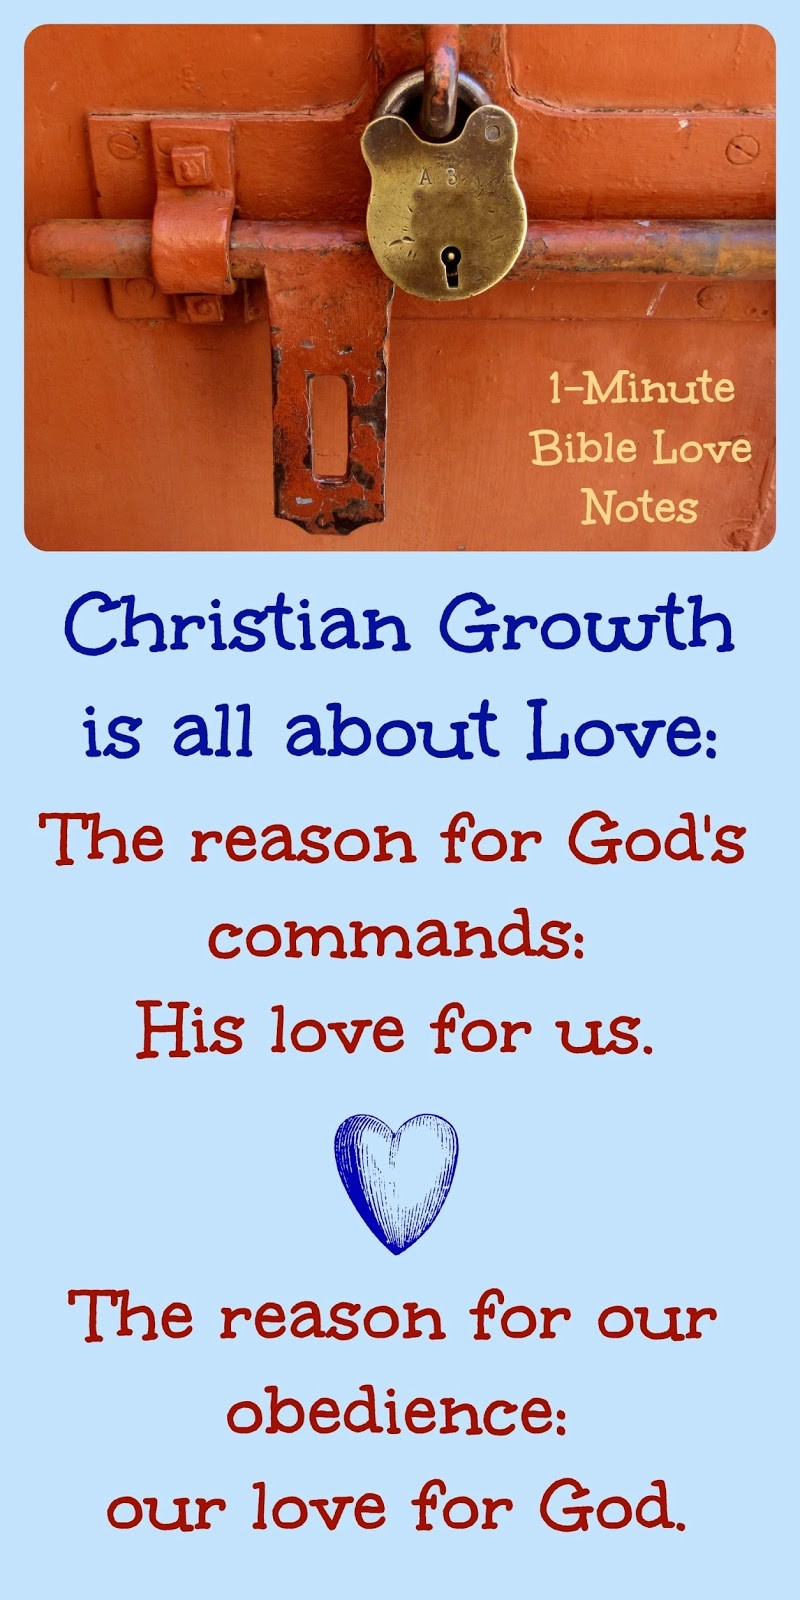 Perfect love casts out fear and sin, growing in Christ, obedience, Bible commands